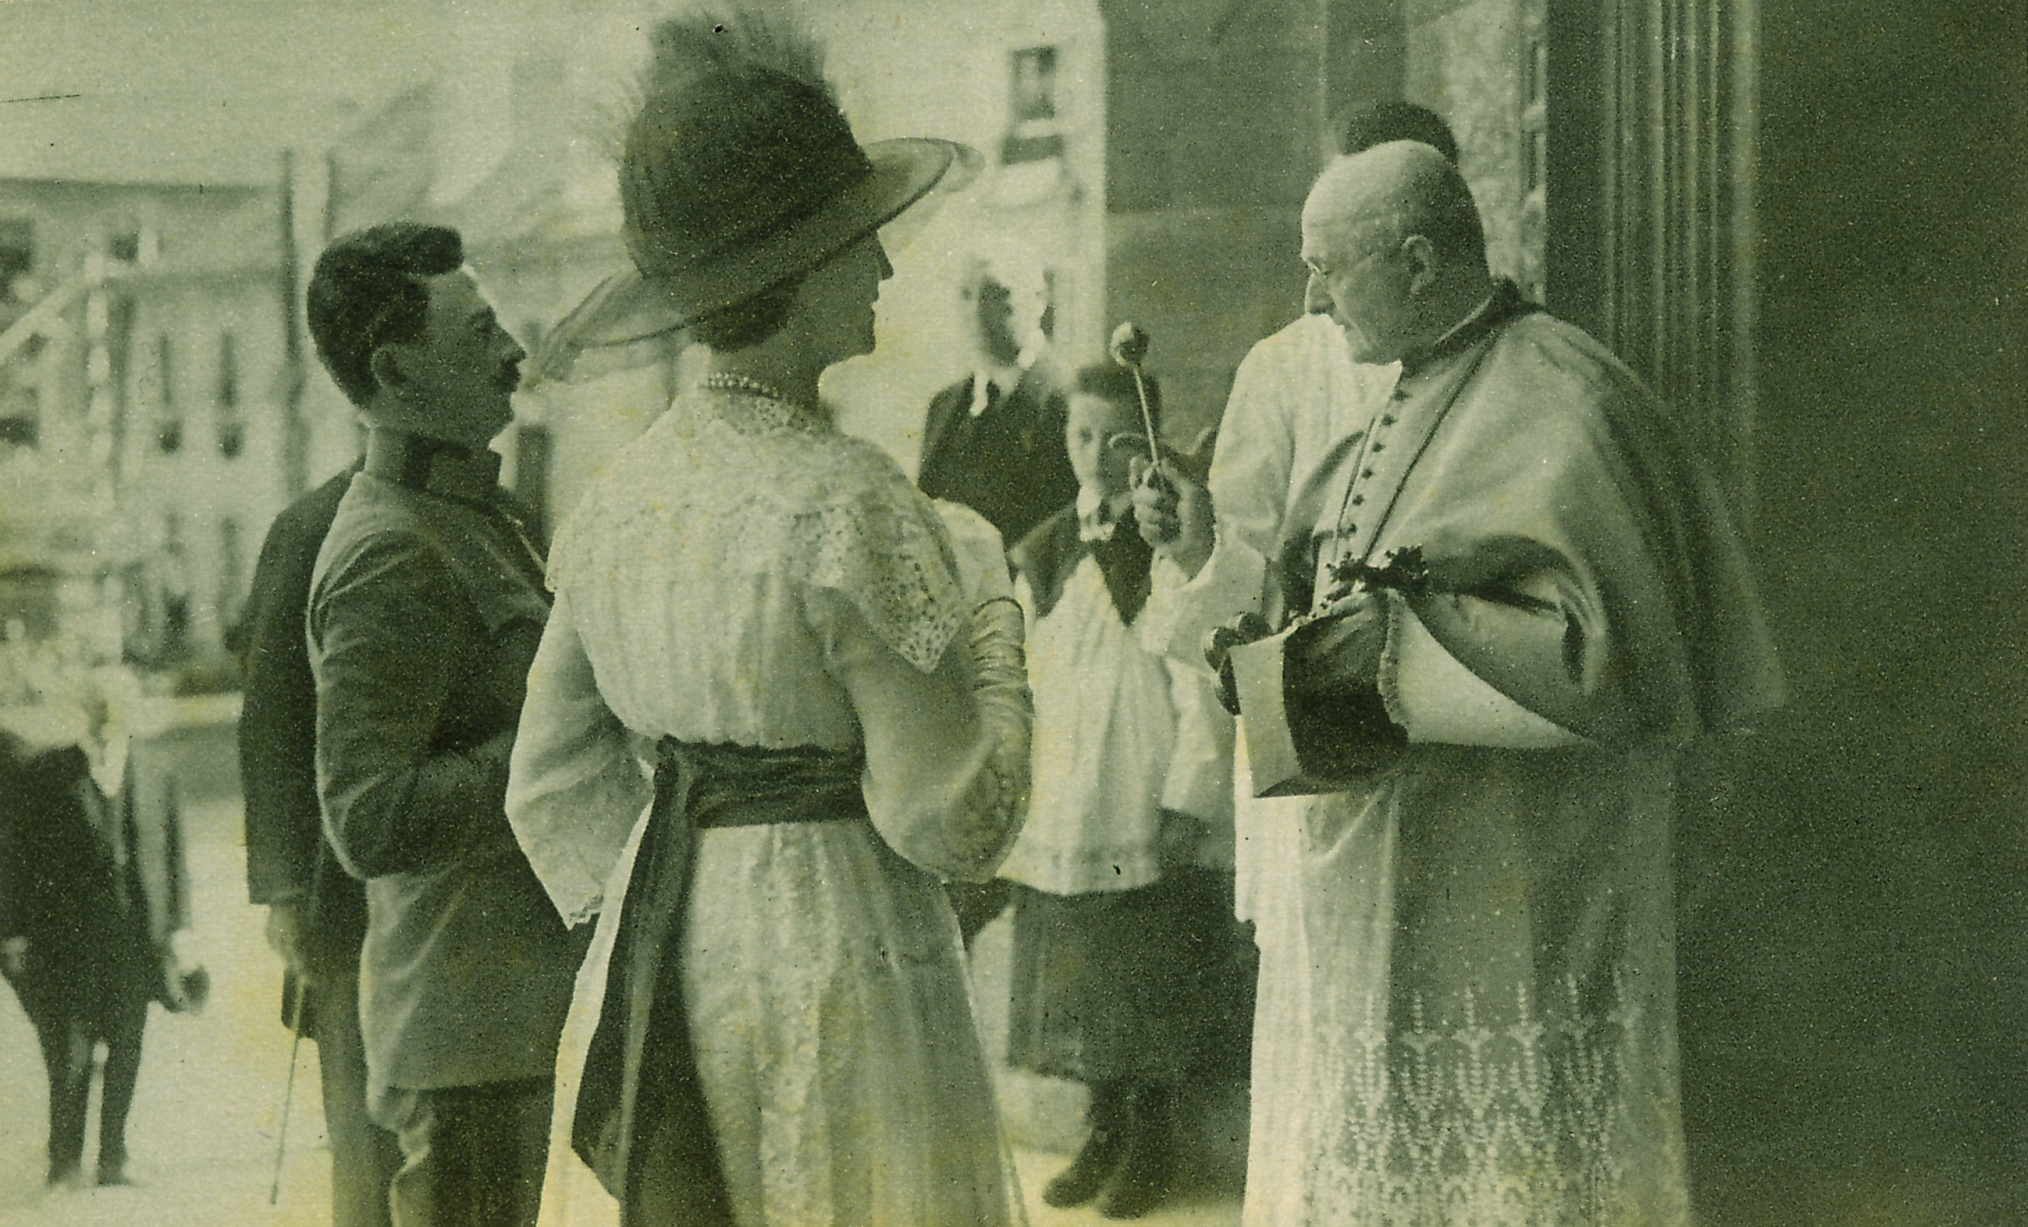 While visiting troops in   Bratislava, Emperor Karl and Empress Zita visited S  aint Martin's Cathedral where they received a blessing from the bishop. ca. 1916